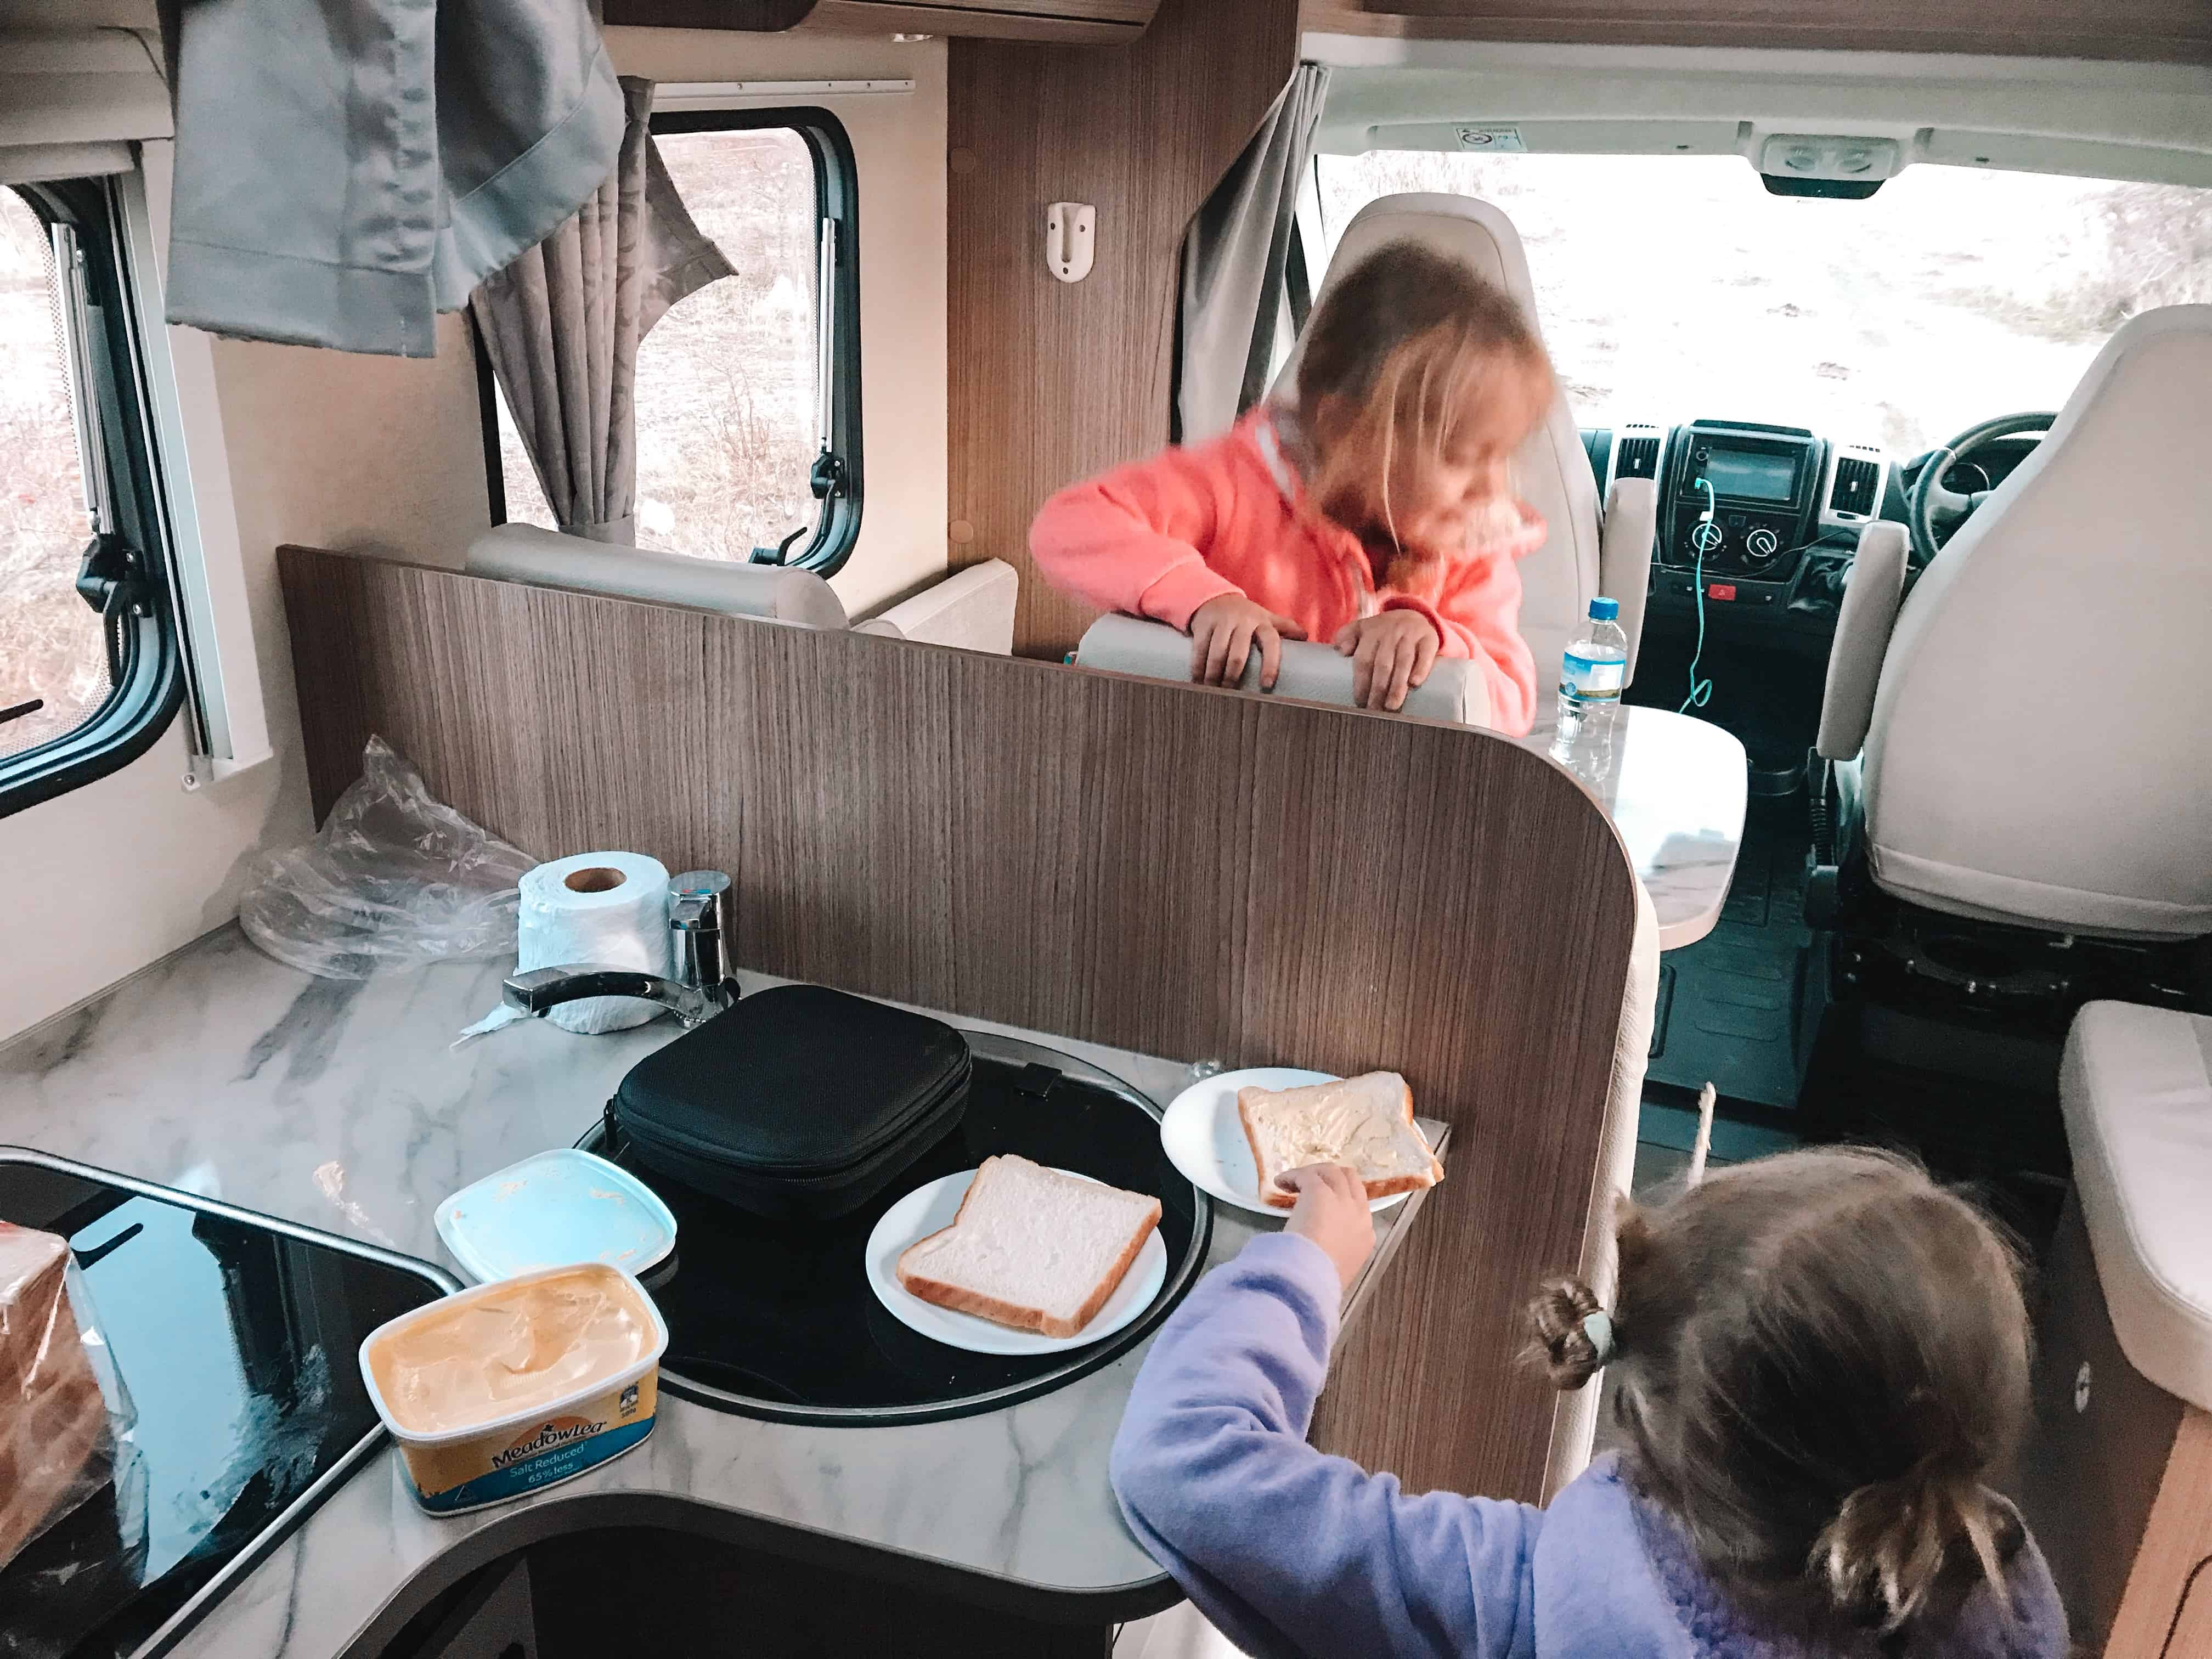 WIlderness Outback 4 motorhome lunch time